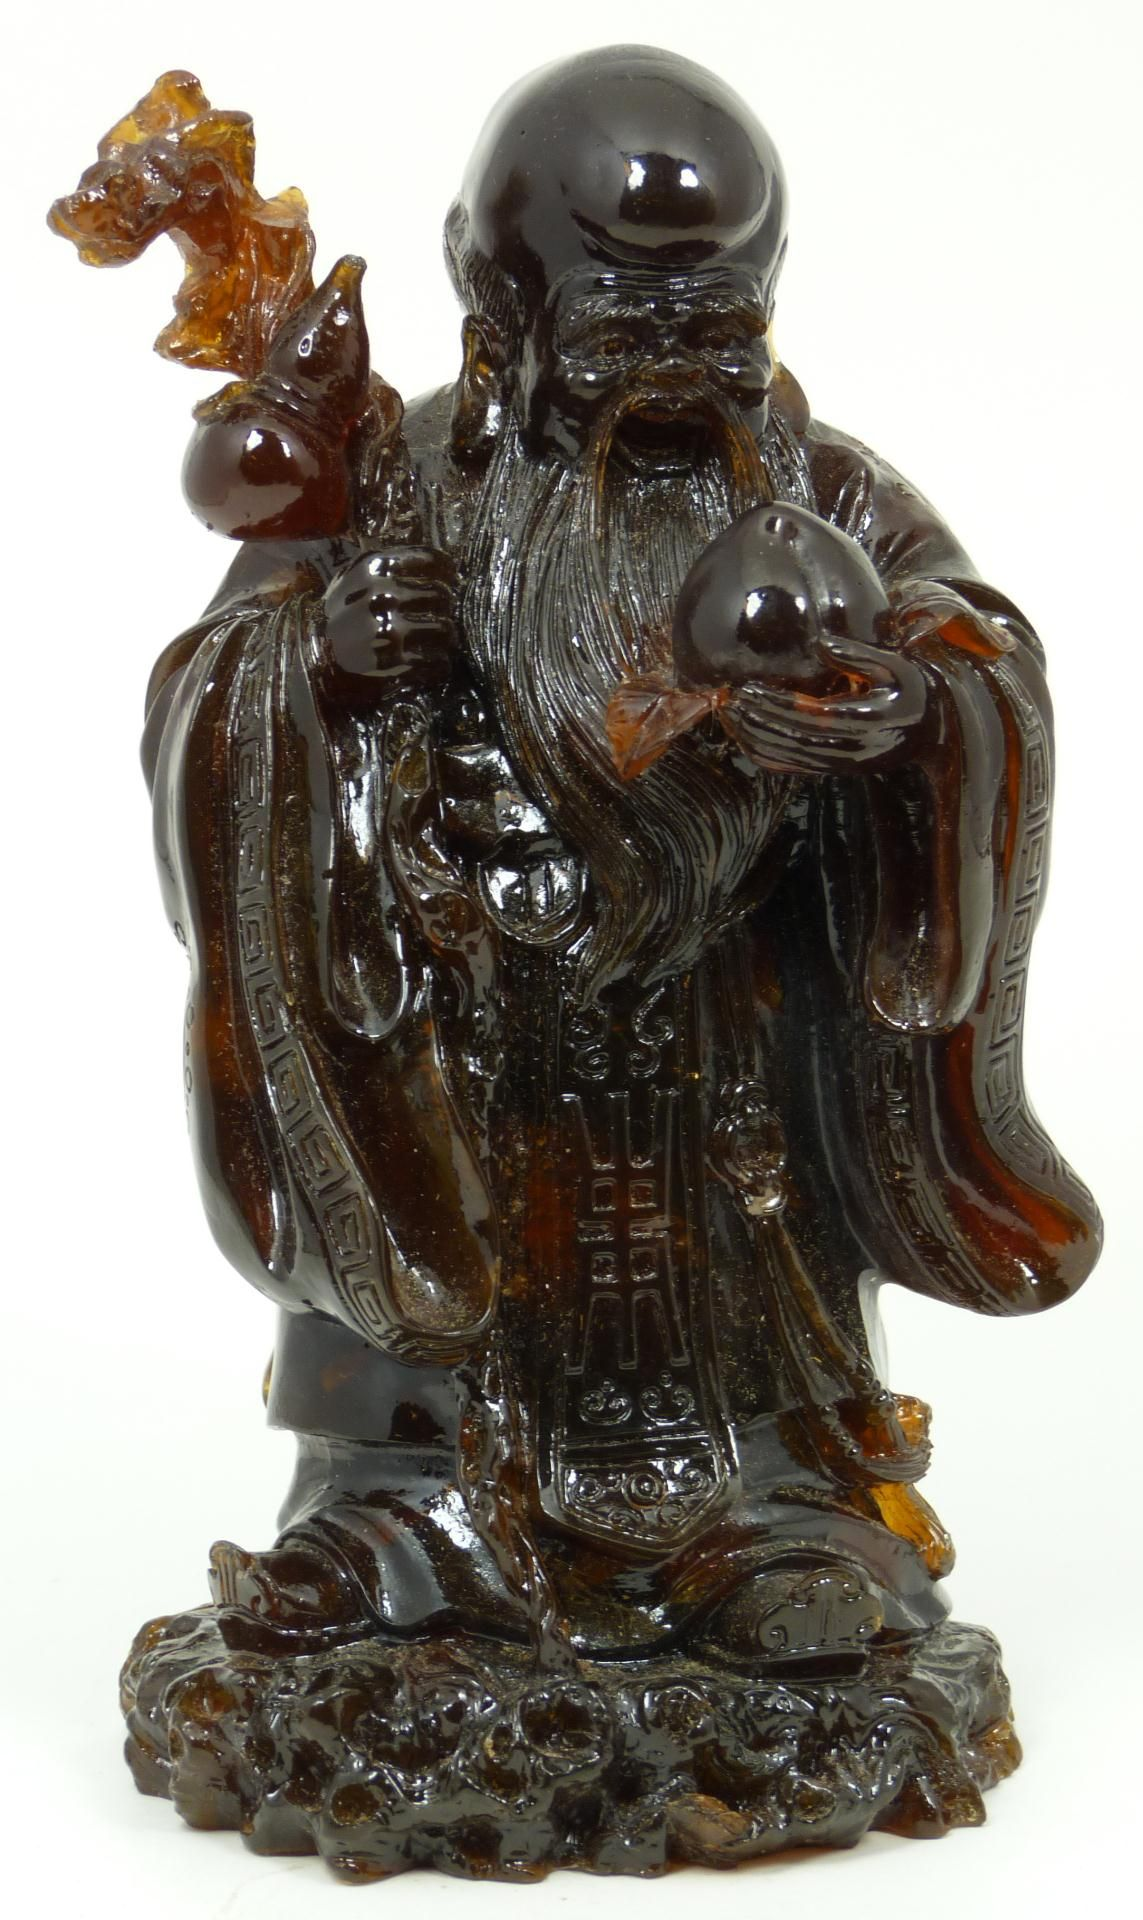 ANTIQUE CHINESE CARVED AMBER SHOU XING FIGURE